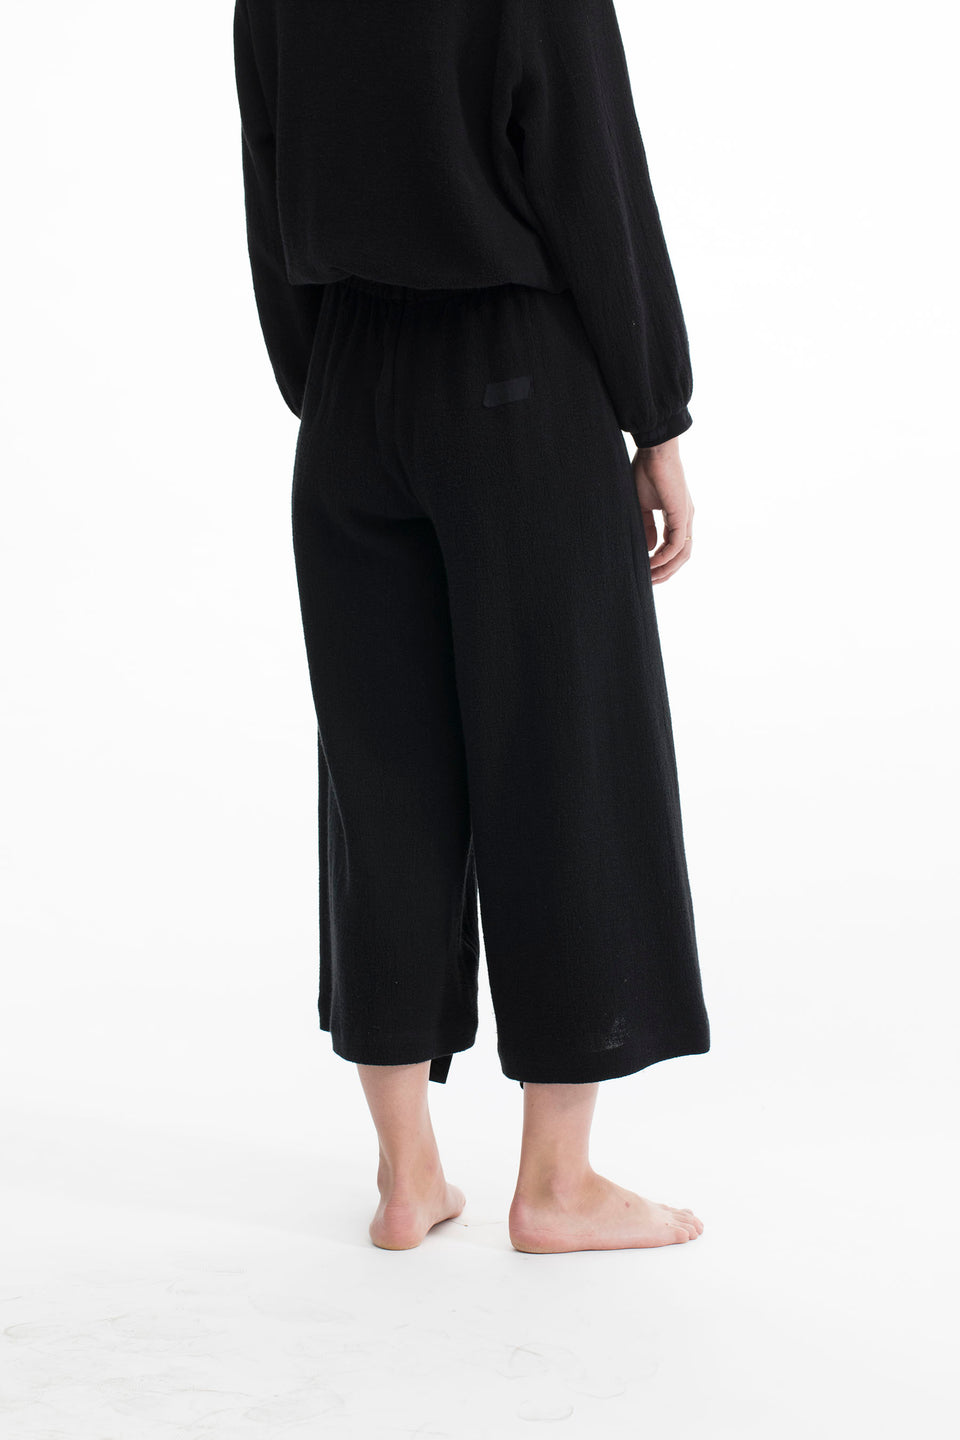 RAW Women Wide-leg Pants Black